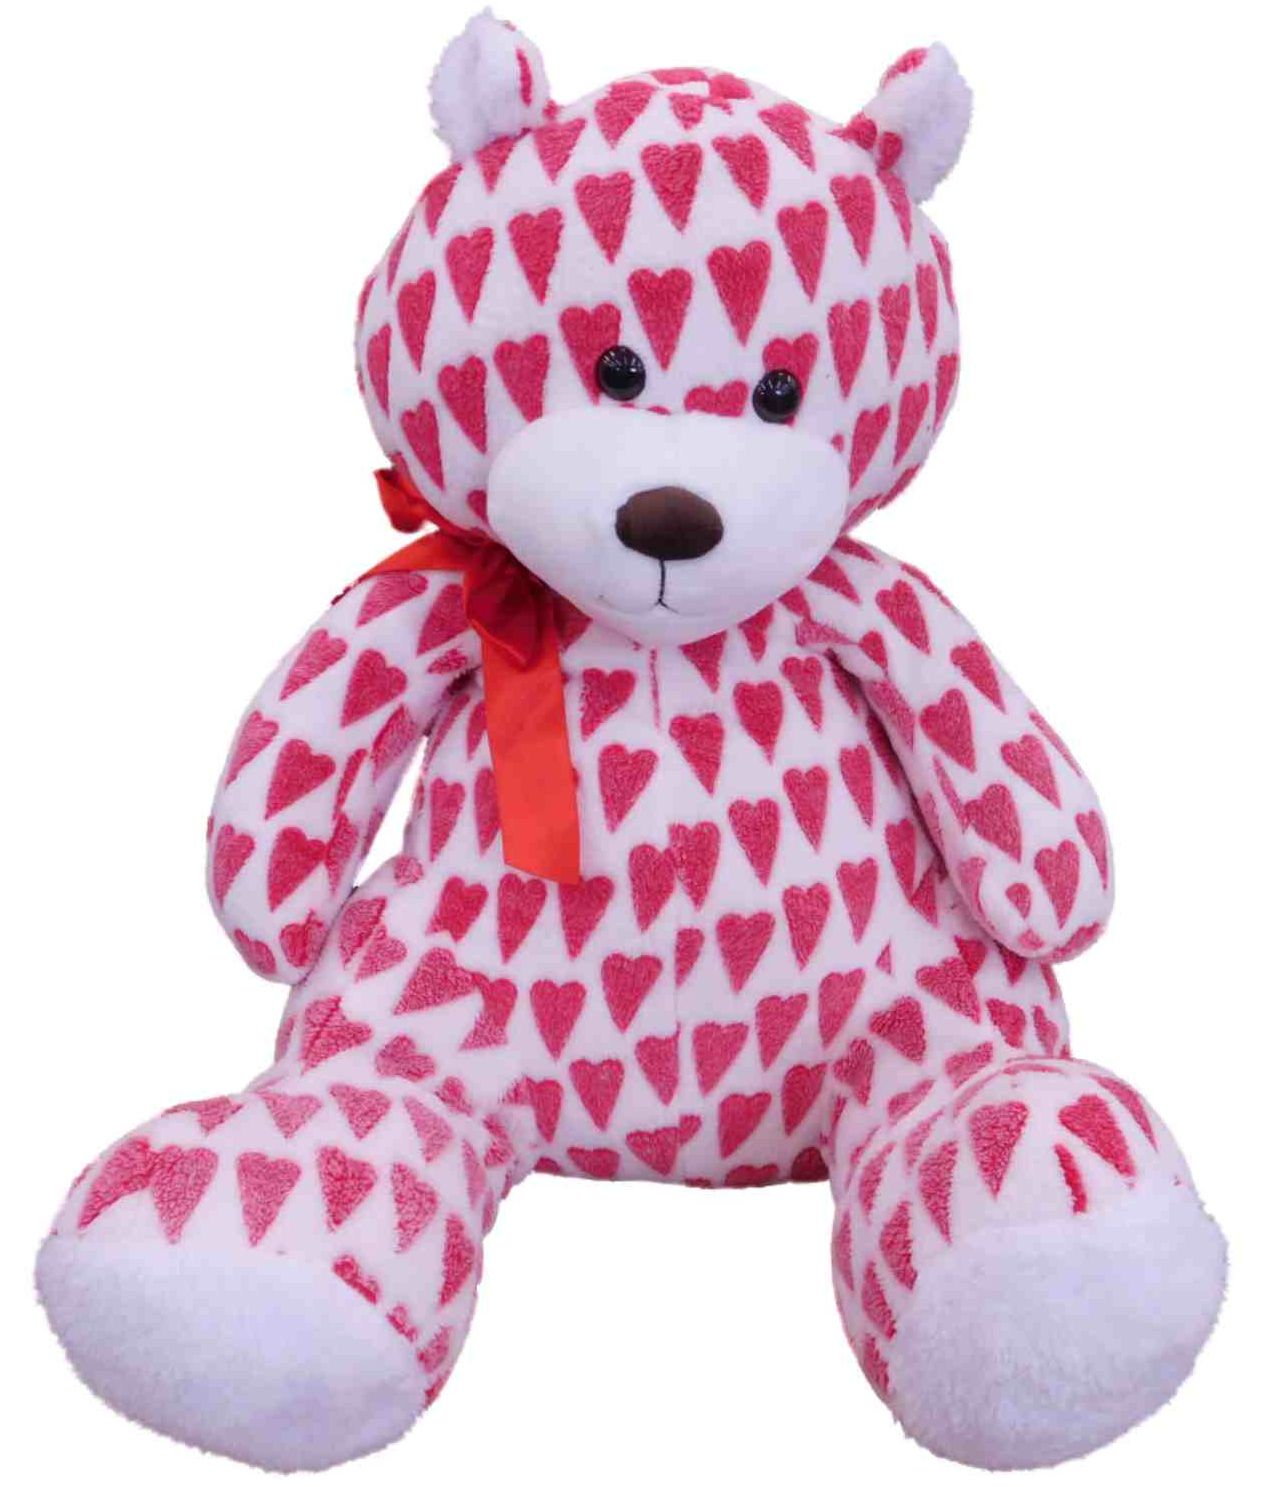 """Sweet Sprouts Red Hearts Love Teddy Bear Stuffed Animal 21"""" Plush Giant Pal by Sweet Sprouts"""